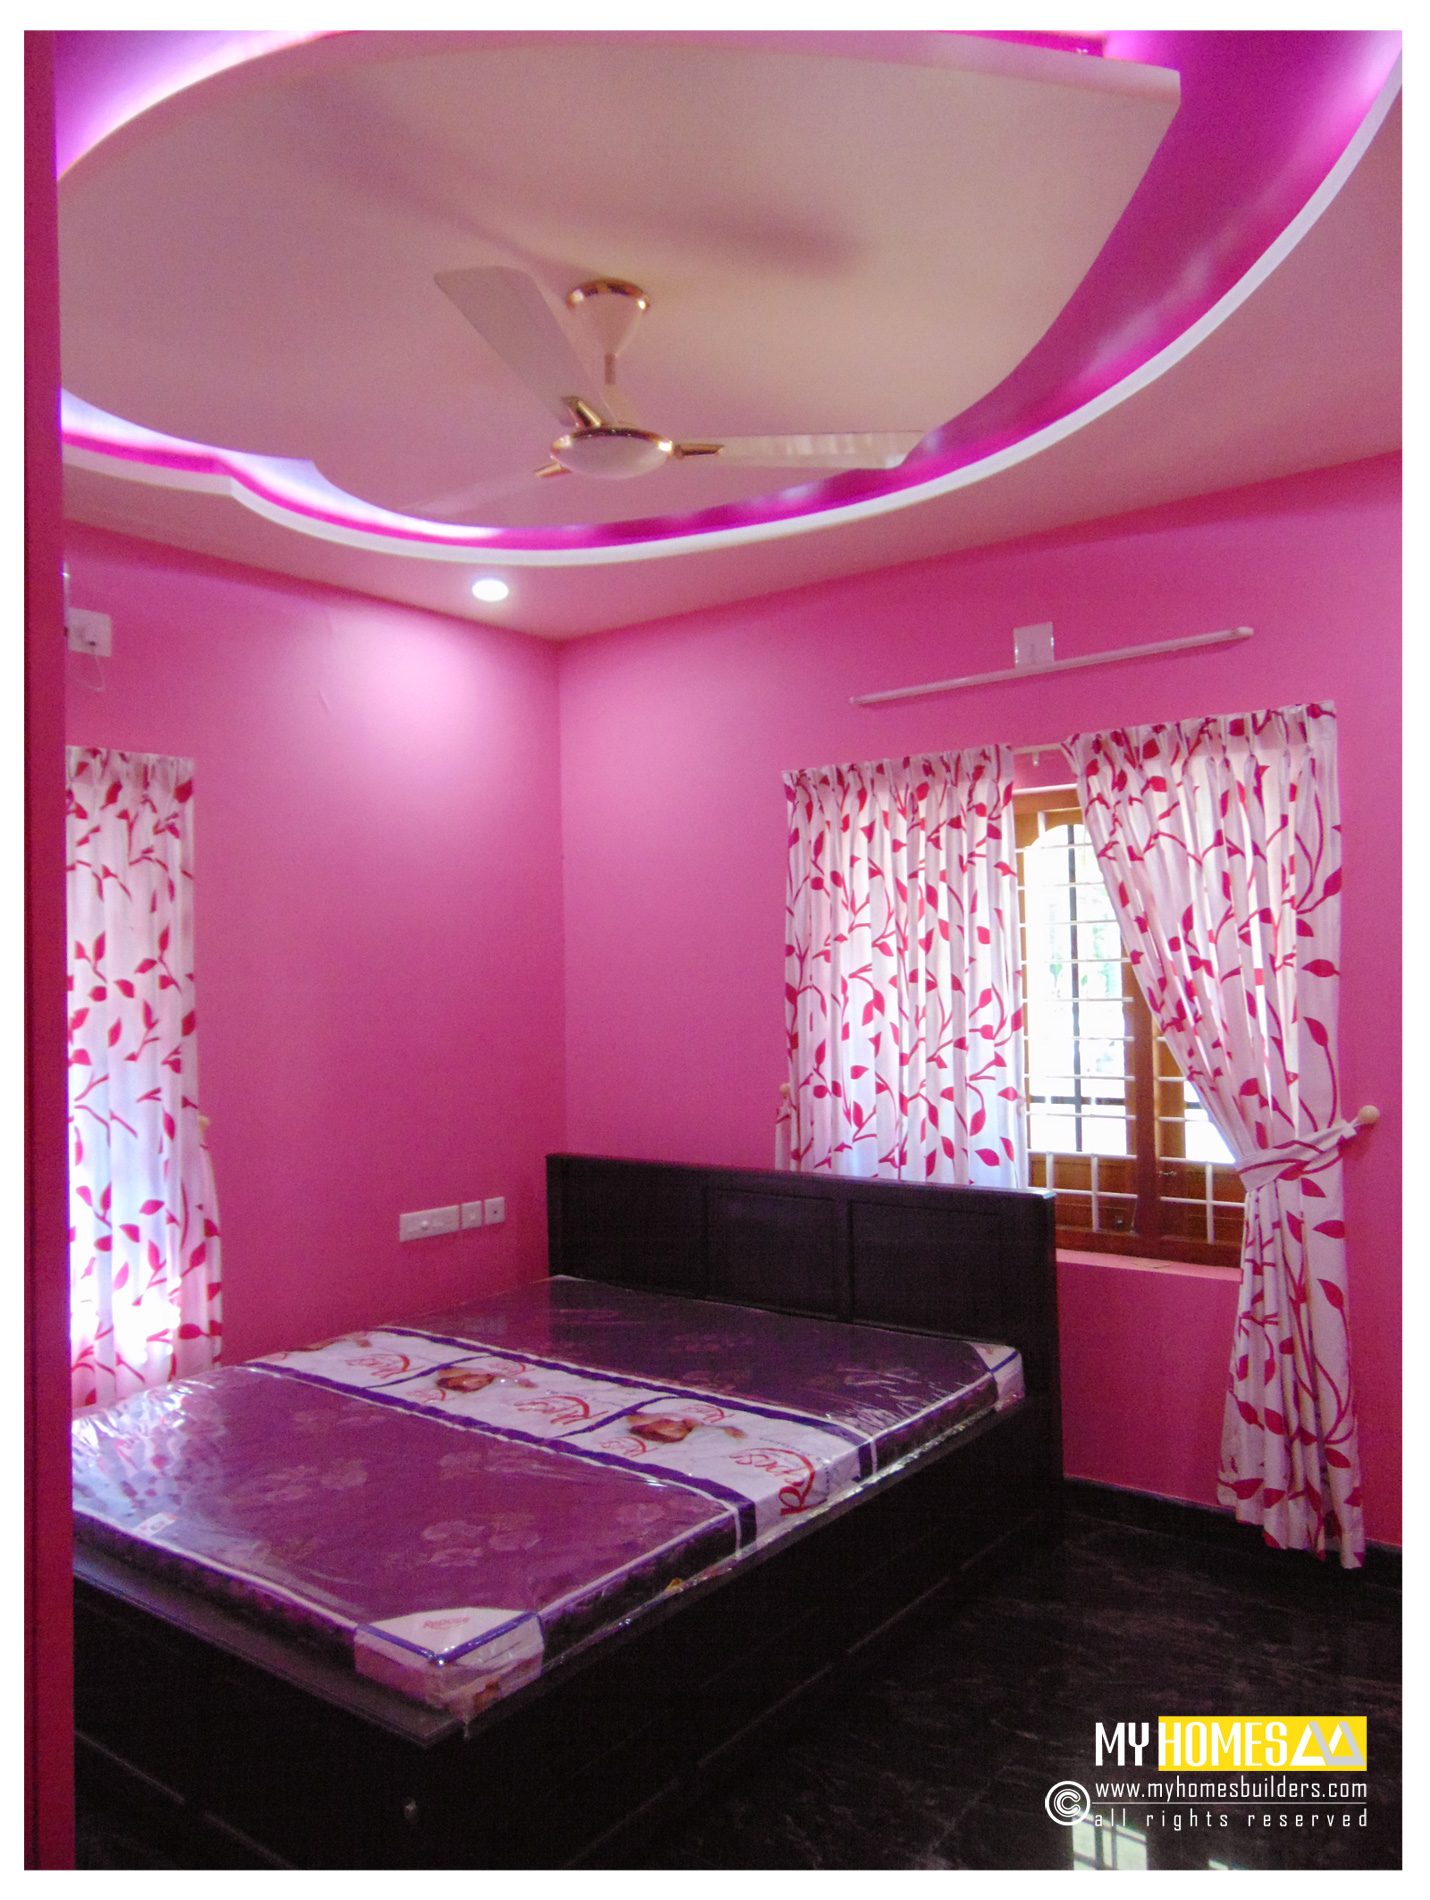 Simple style kerala bedroom designs ideas for home interior for Home bedroom design photos